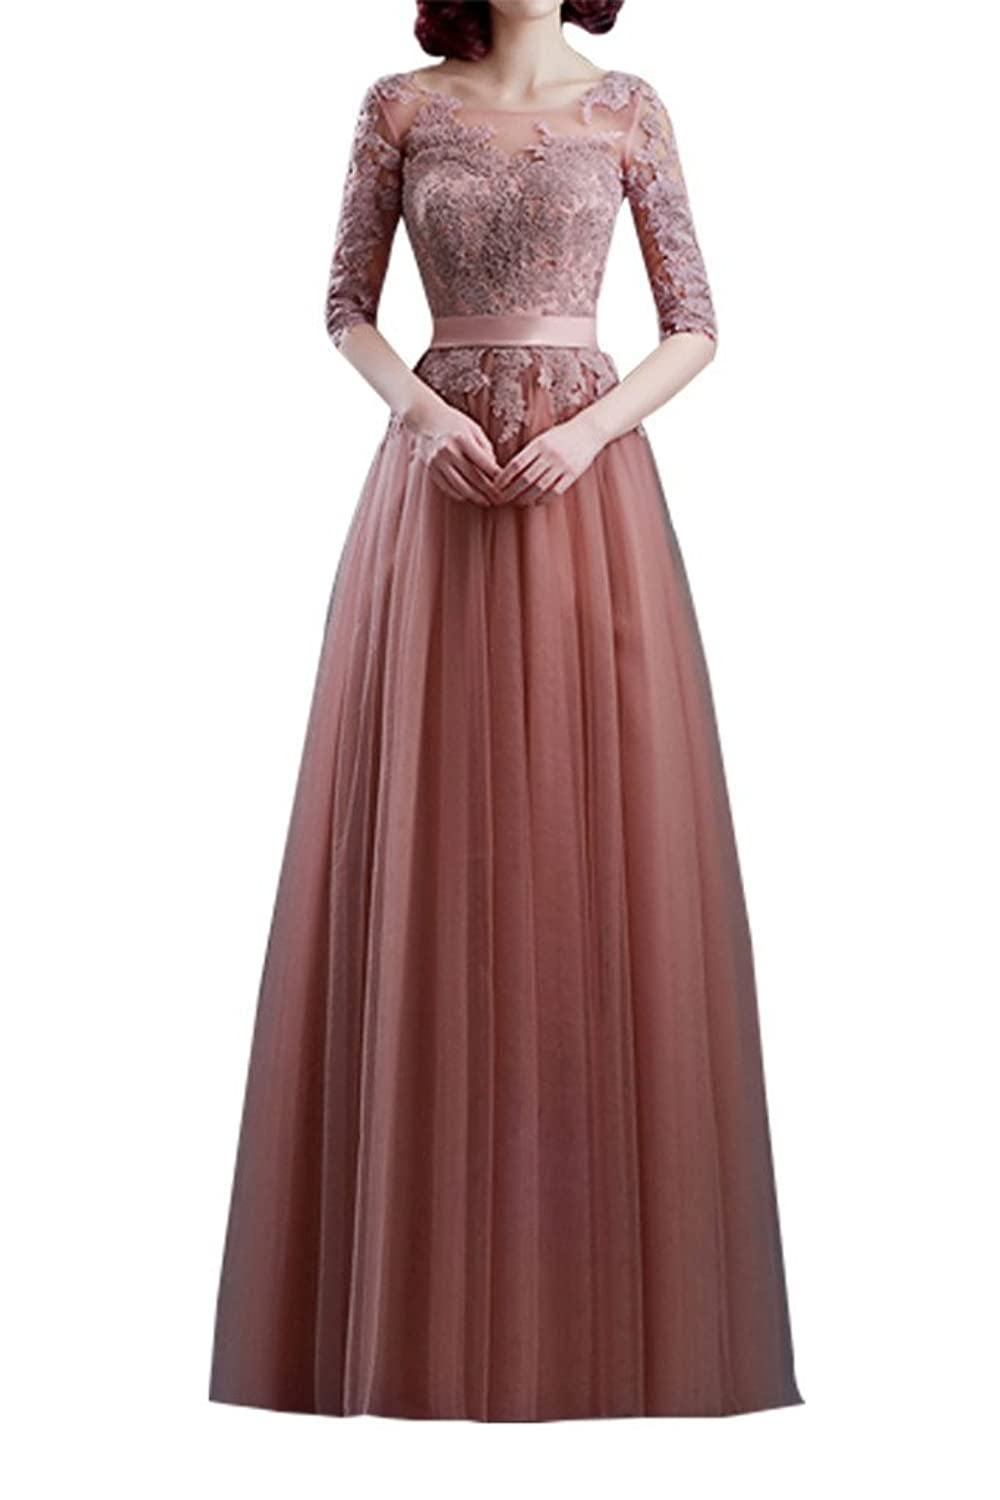 Charm Bridal Prom Dress Lace-up Tulle Half-sleeve Applique Bride mother Dresses